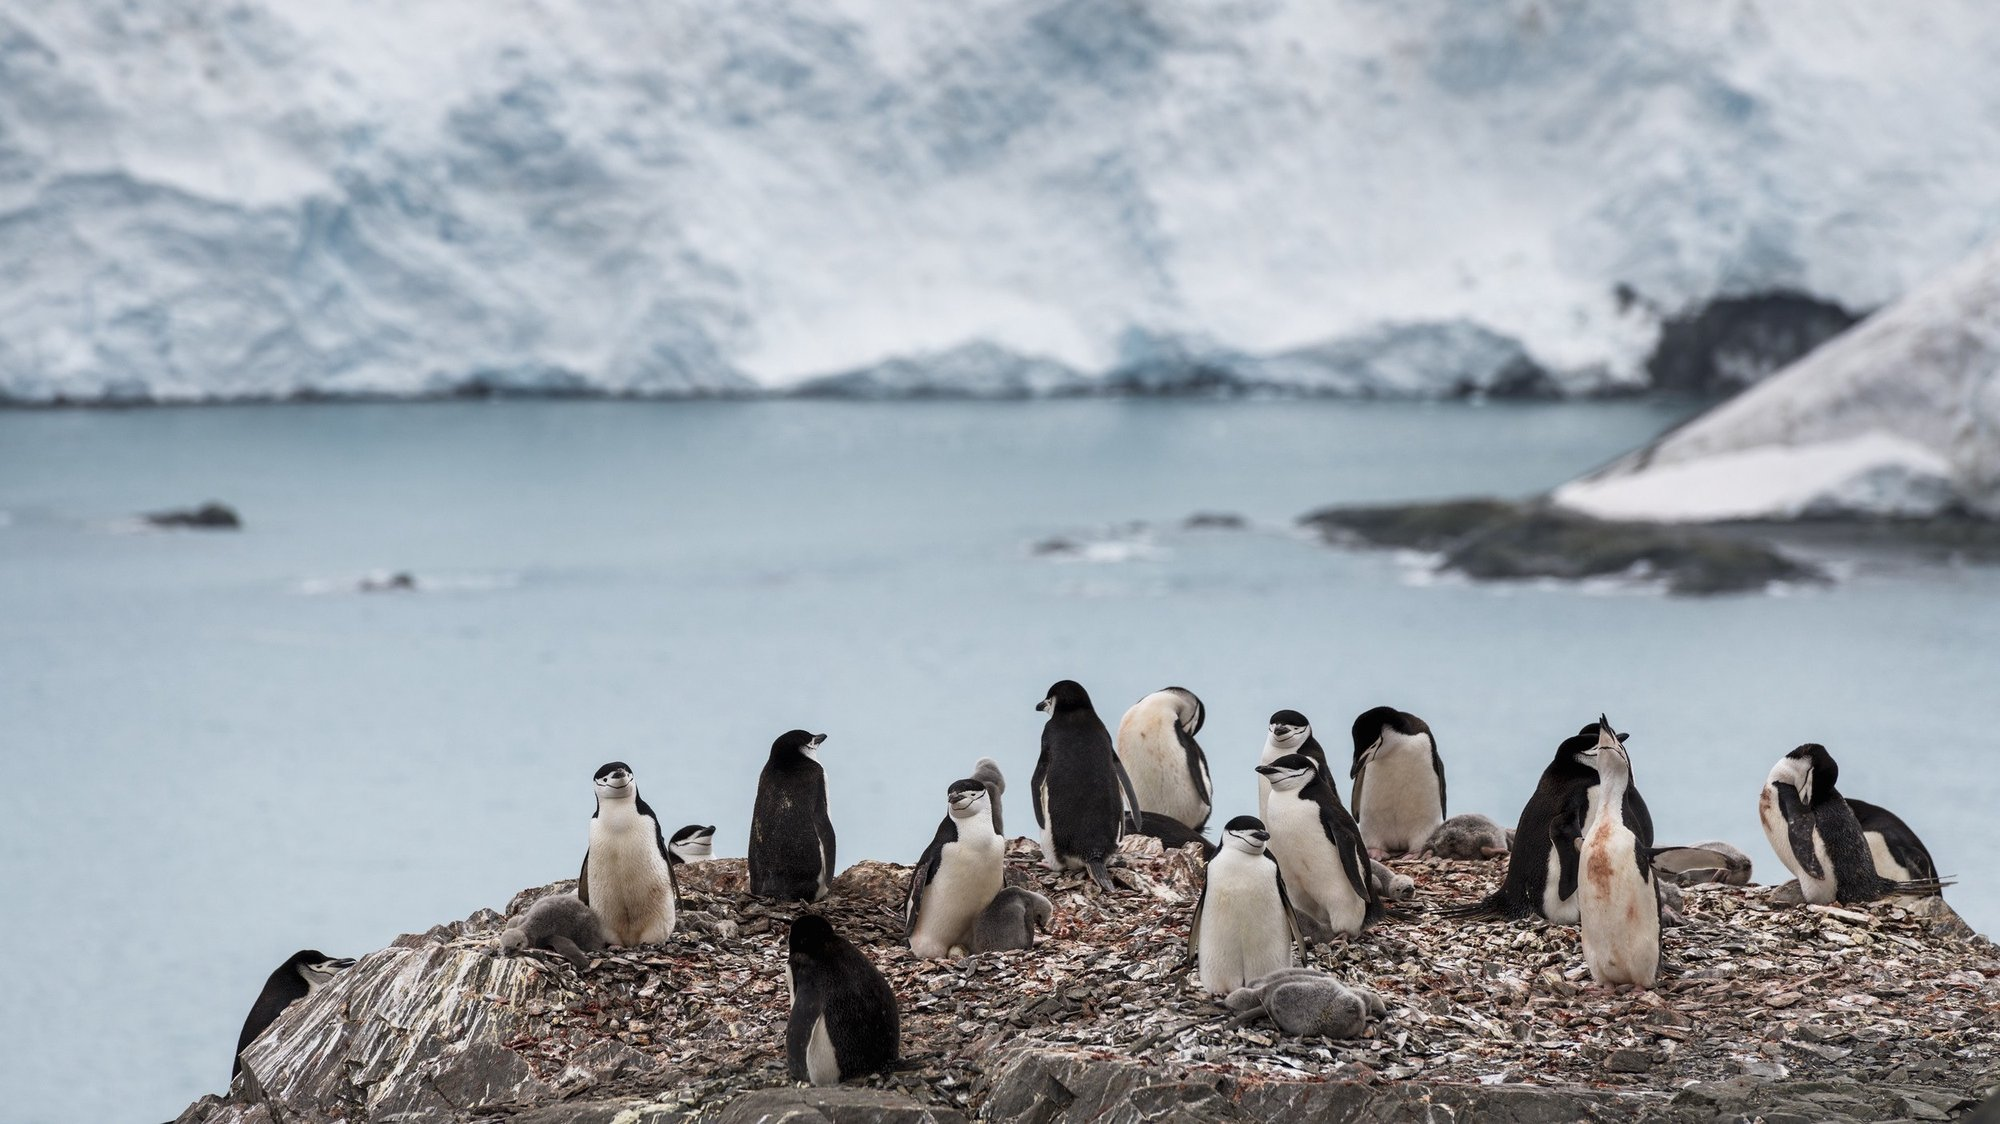 epa08211941 A handout photo made available by Greenpeace shows a group of chinstrap penguins on Elephant Island, Antarctica 11 February 2020. The population of chinstrap penguins fell by up to 77% in some Antarctic colonies in the last fifty years, with an average depopulation of around 60%, the Greenpeace environmental organization said Tuesday.  EPA/Christian Aslund / Greenpeace HANDOUT  HANDOUT EDITORIAL USE ONLY/NO SALES